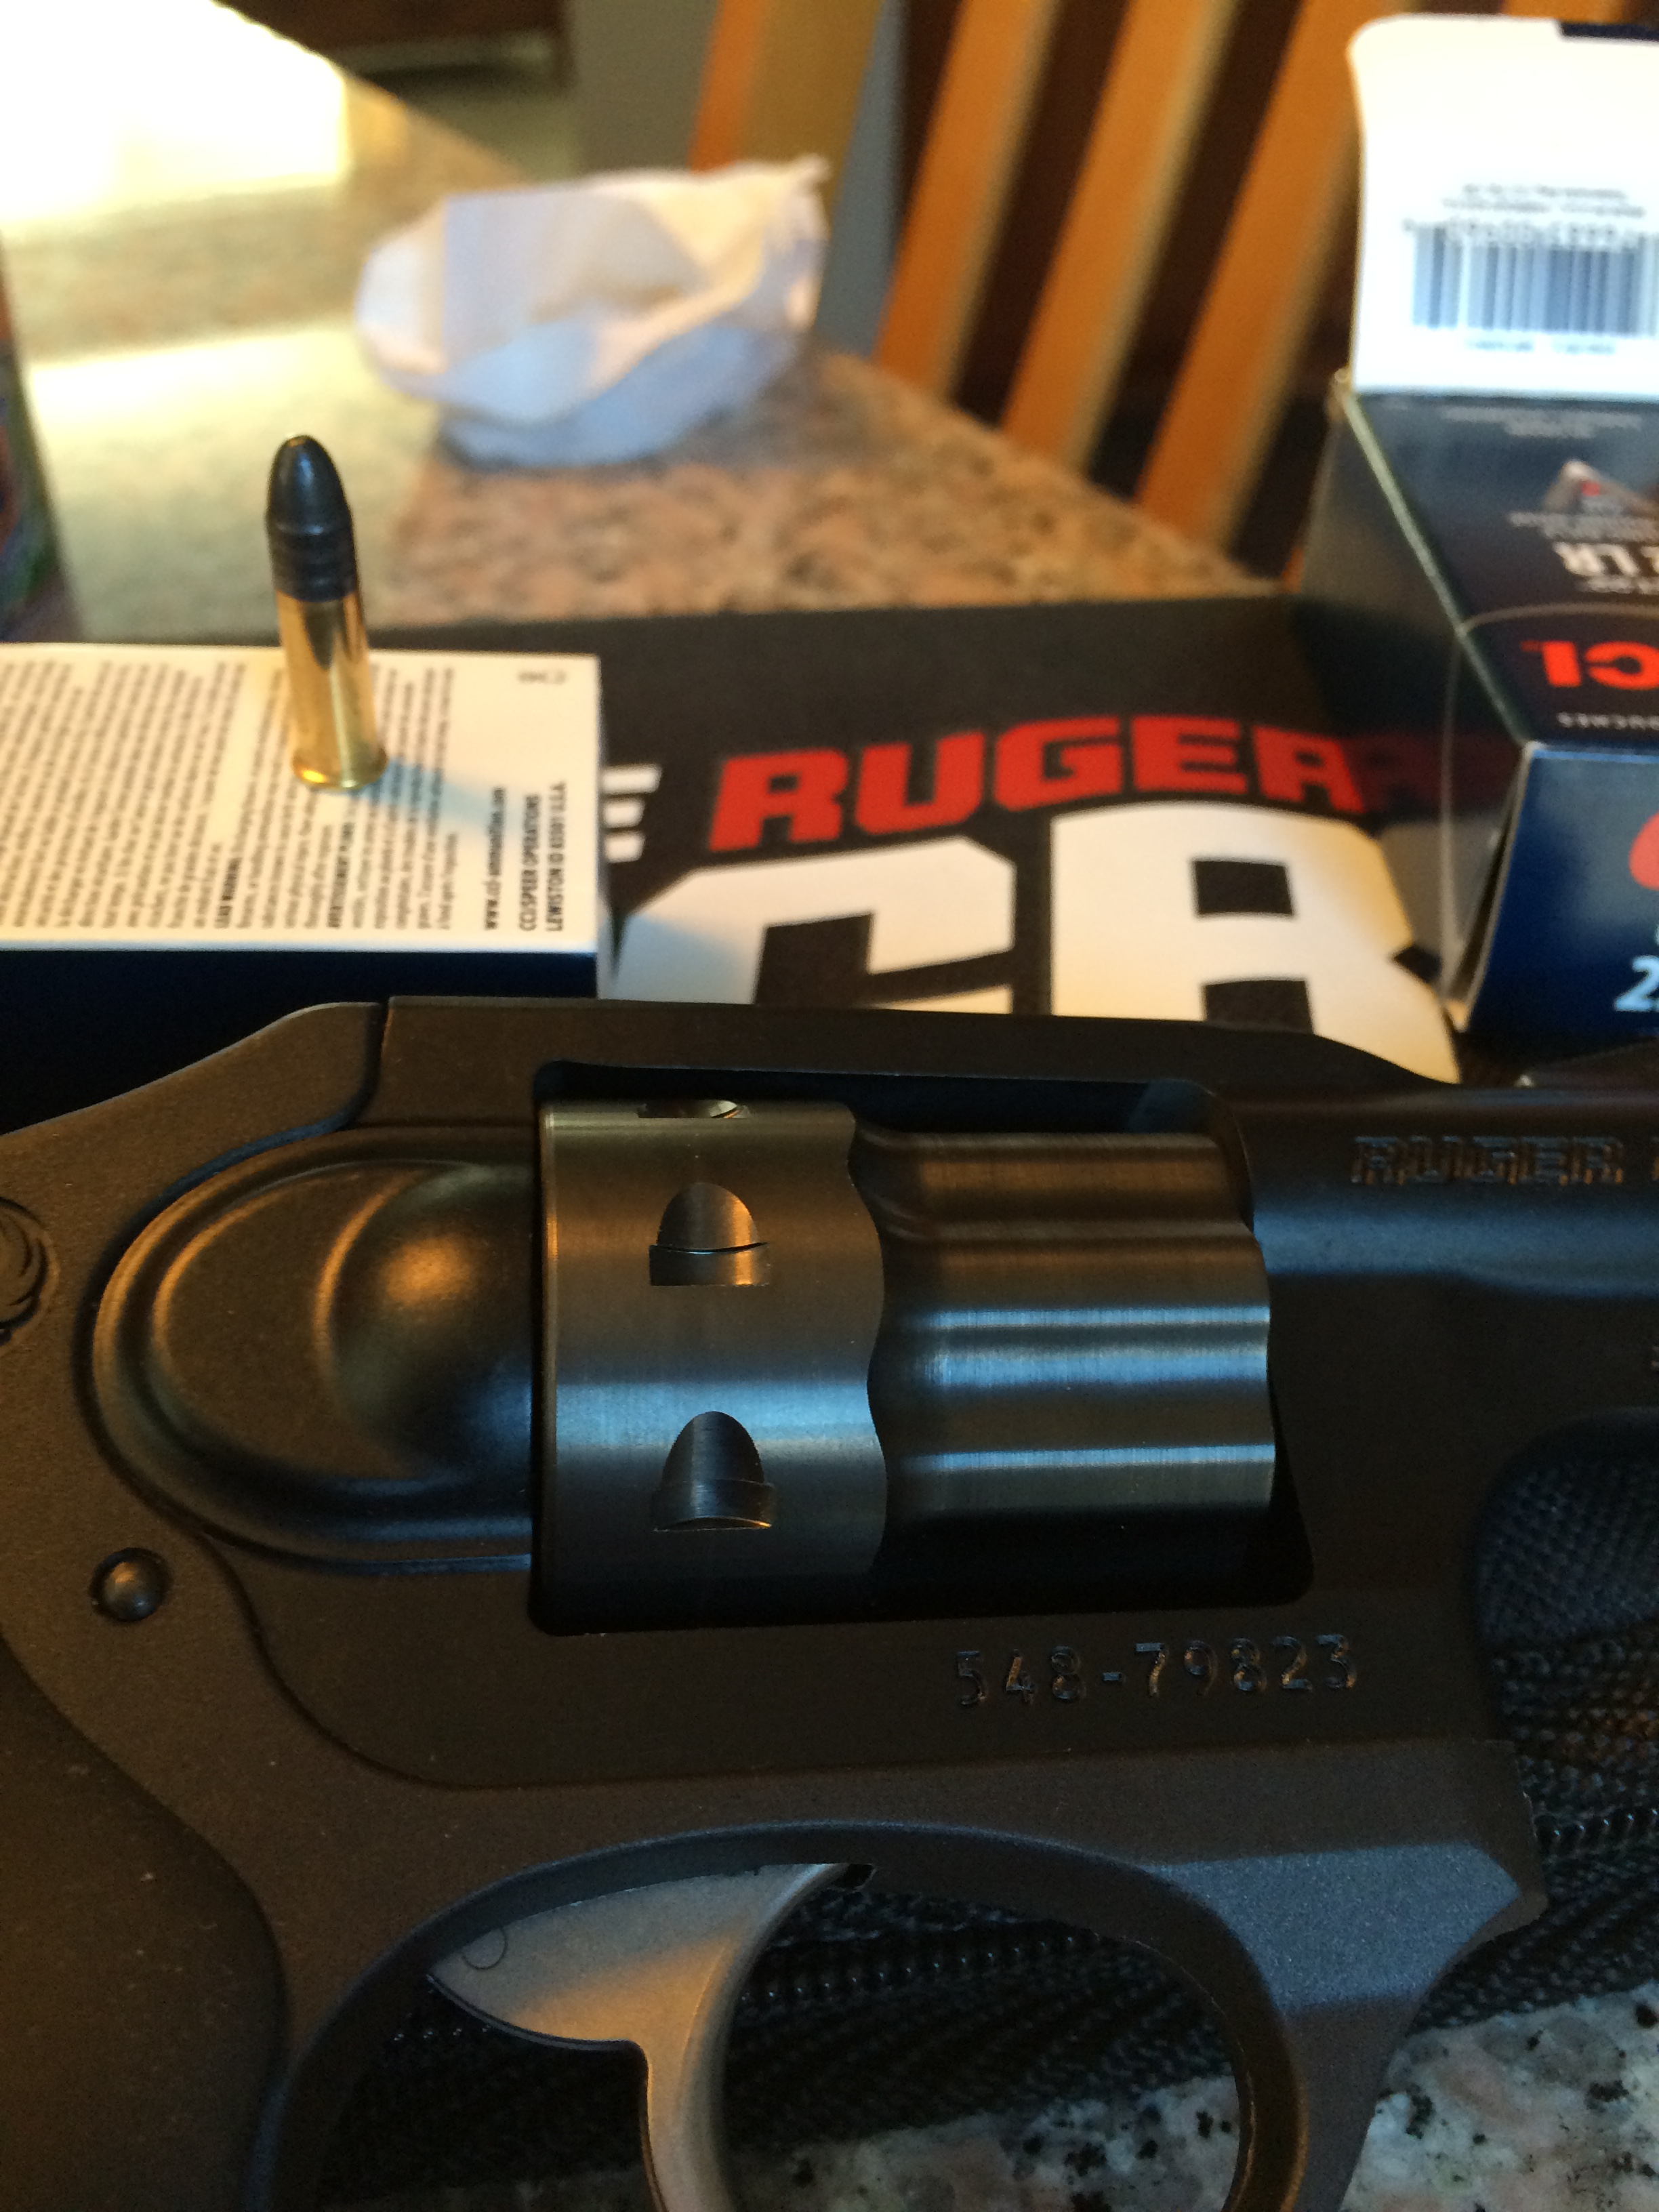 LCR 22LR for Cheap Practice -  Worth While?-005.jpg